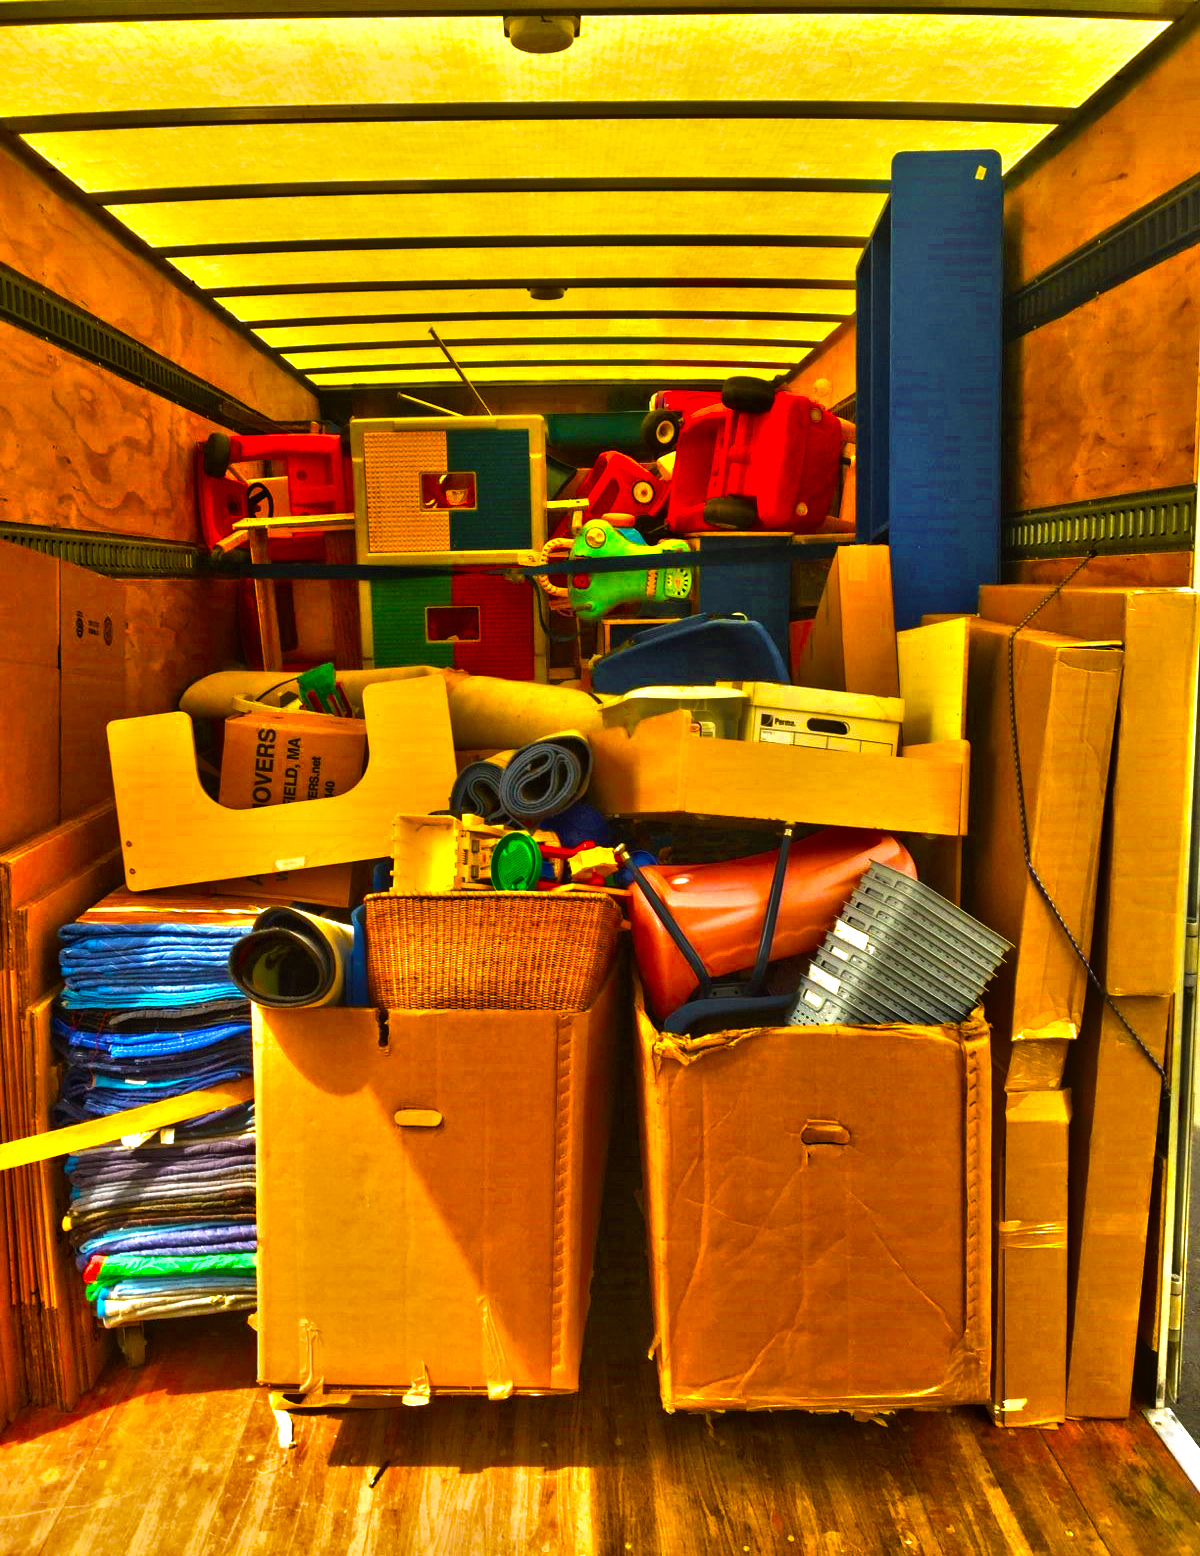 Boxes in Storage truck